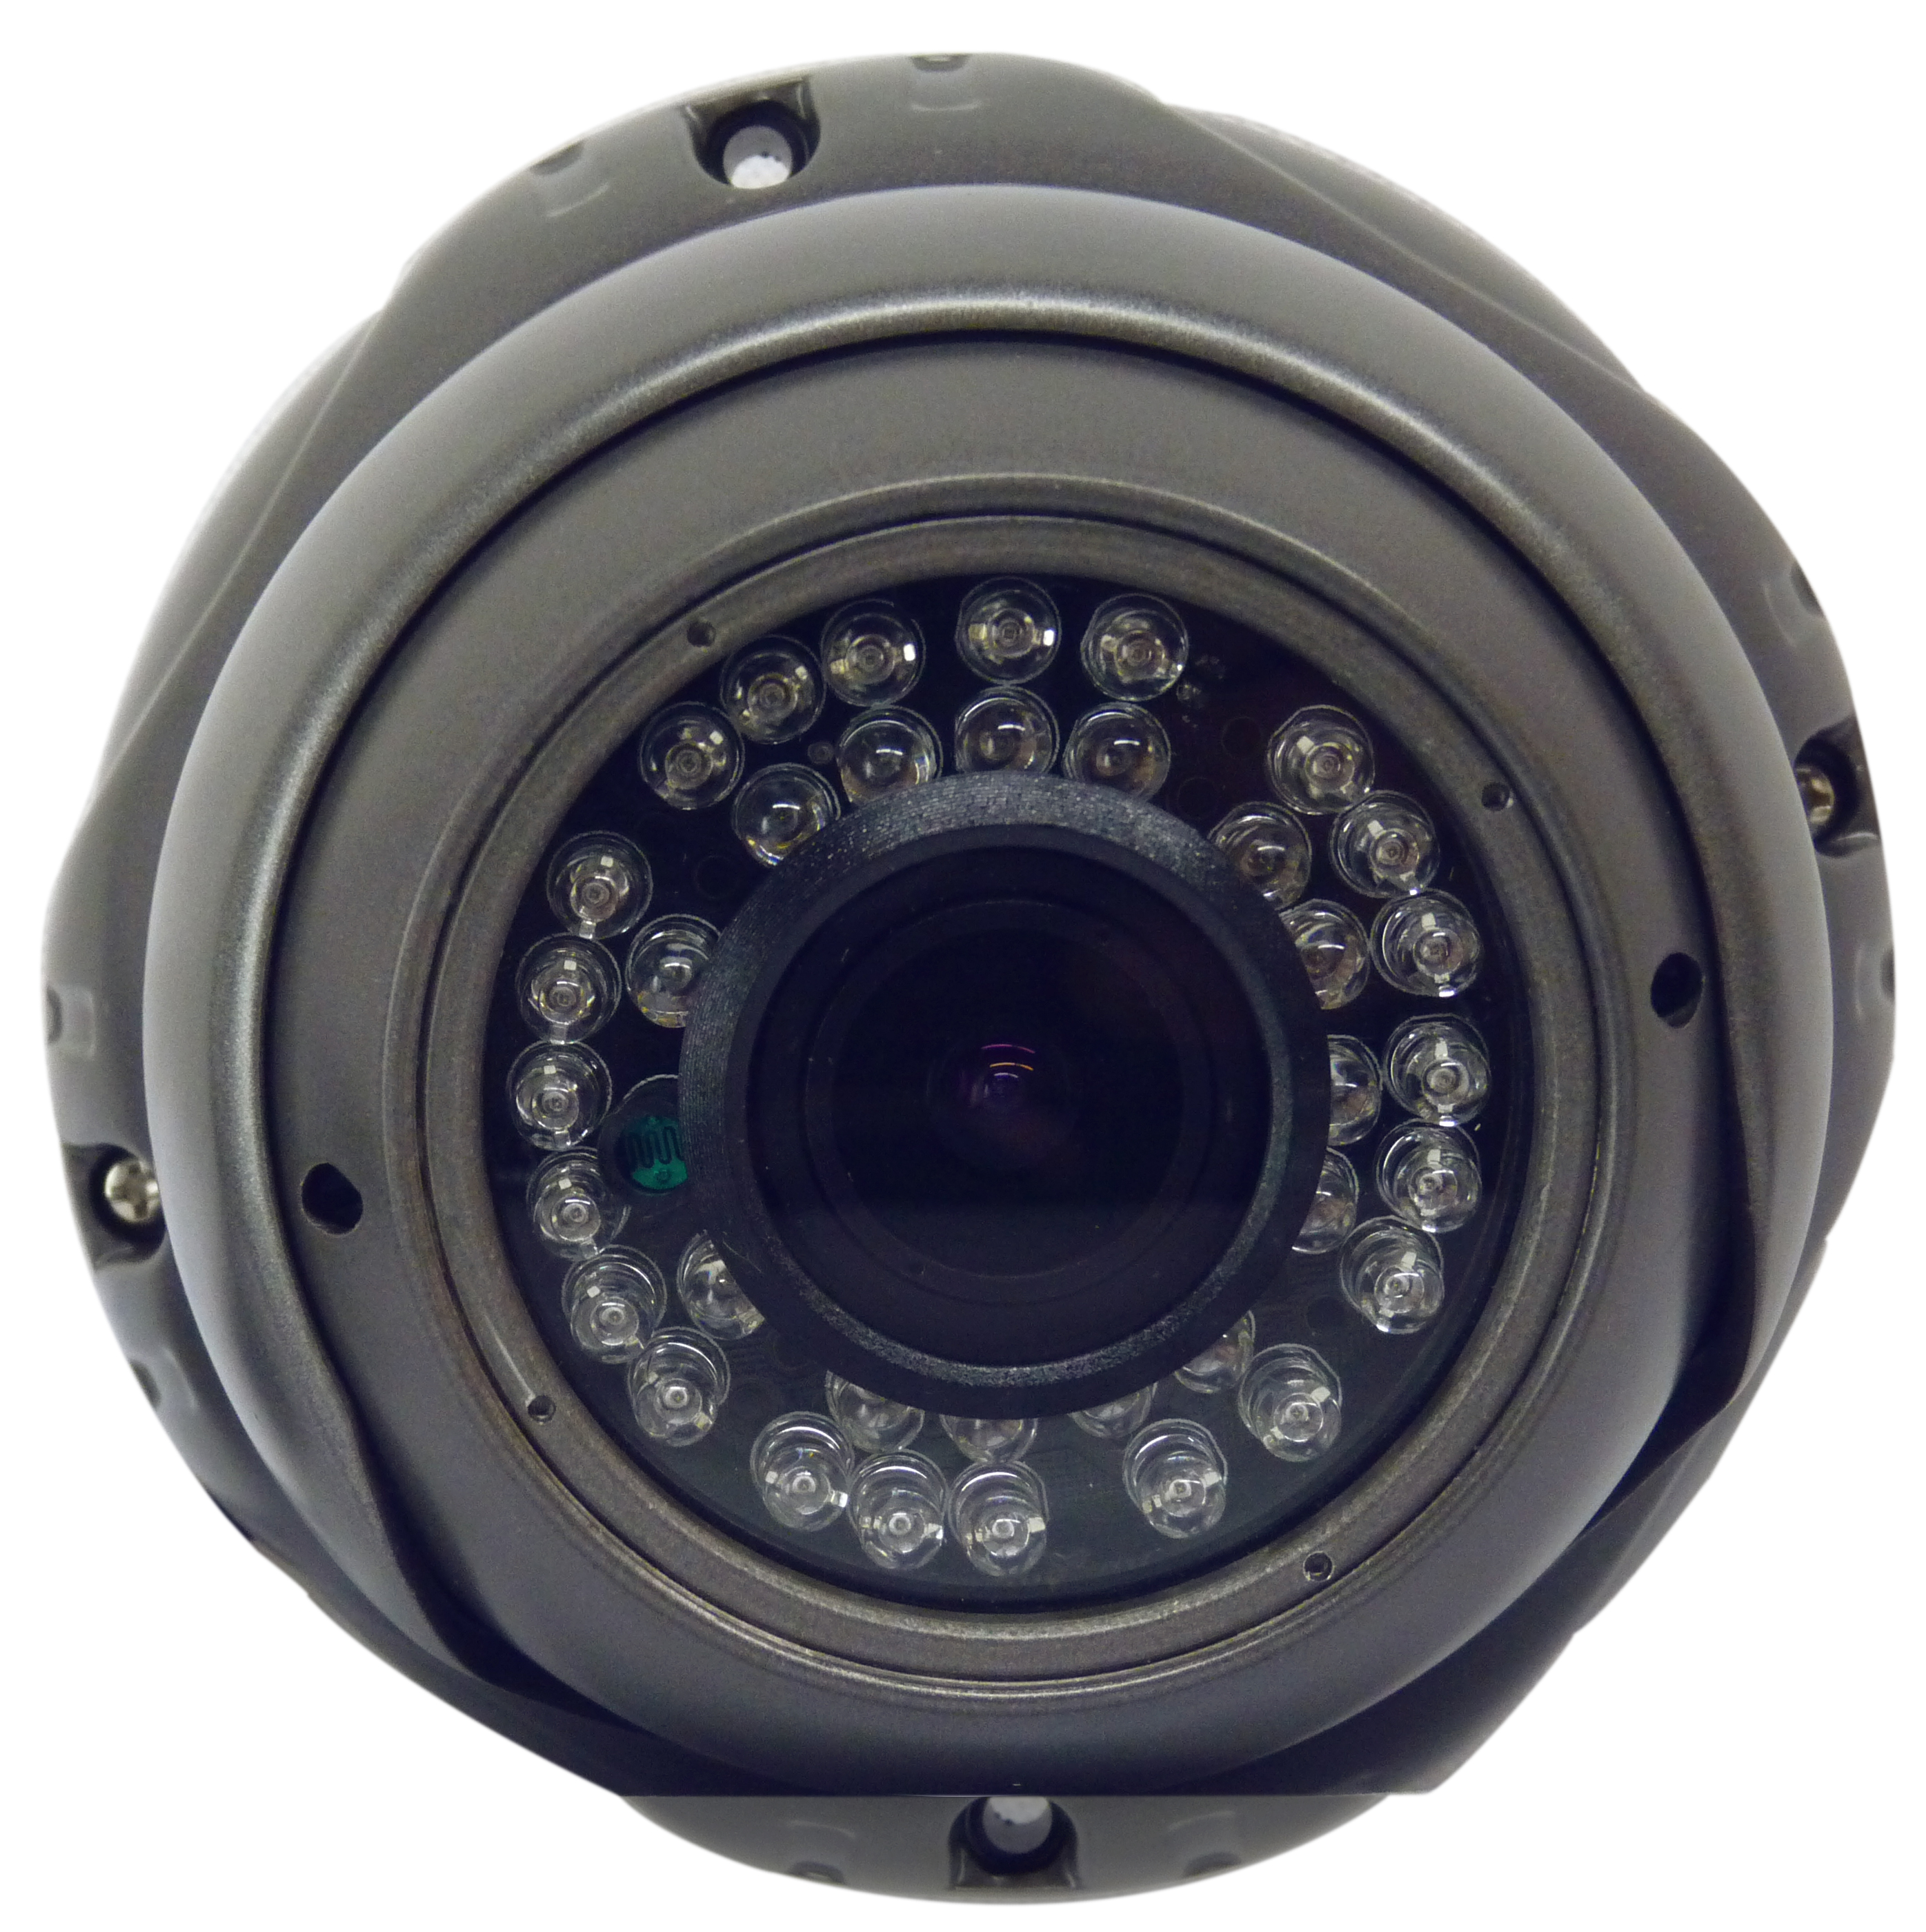 Image for DBS R610G - 700TVL CCTV Dome Security Camera - 1/3'' Sony Super HAD CCD II